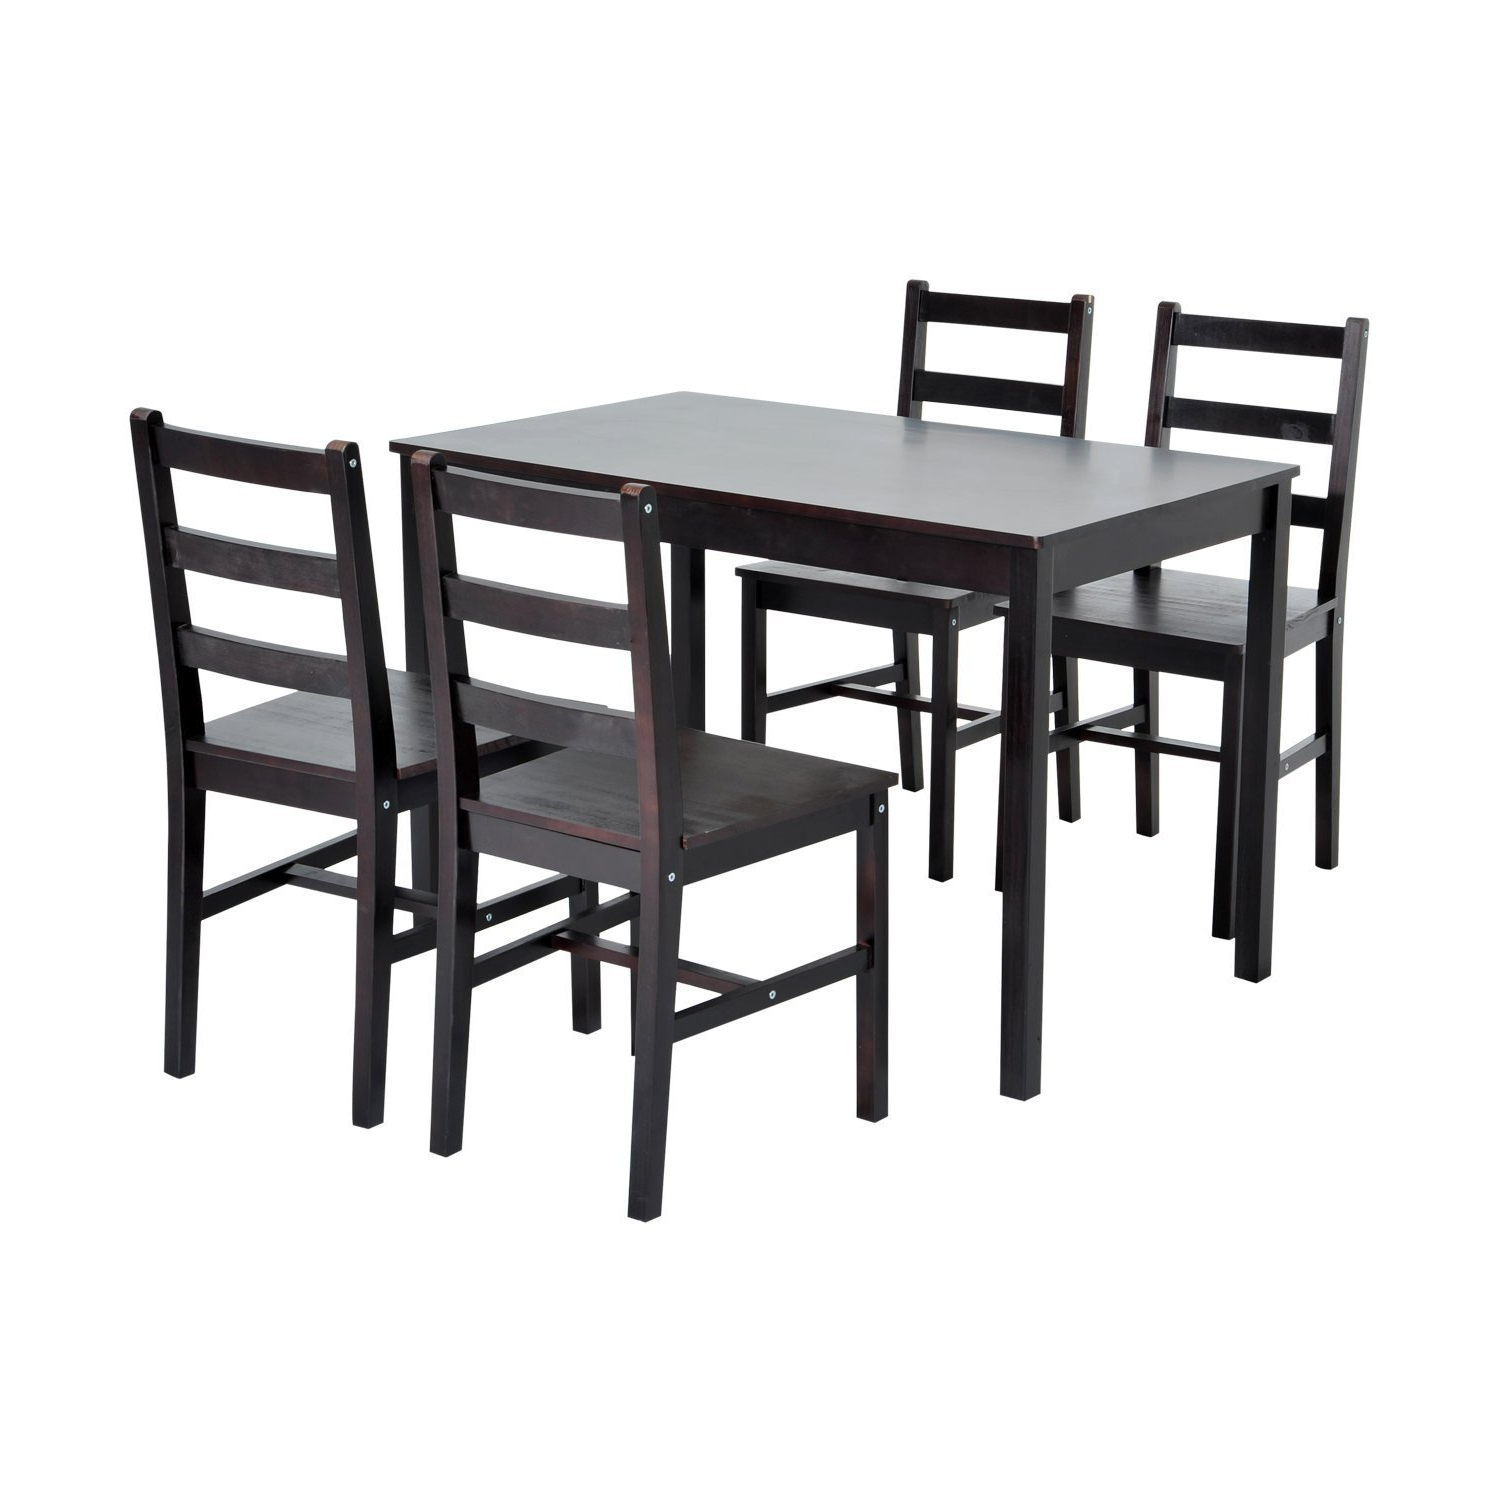 Widely Used Winston Porter Yedinak 5 Piece Solid Wood Dining Set Regarding Yedinak 5 Piece Solid Wood Dining Sets (View 16 of 20)